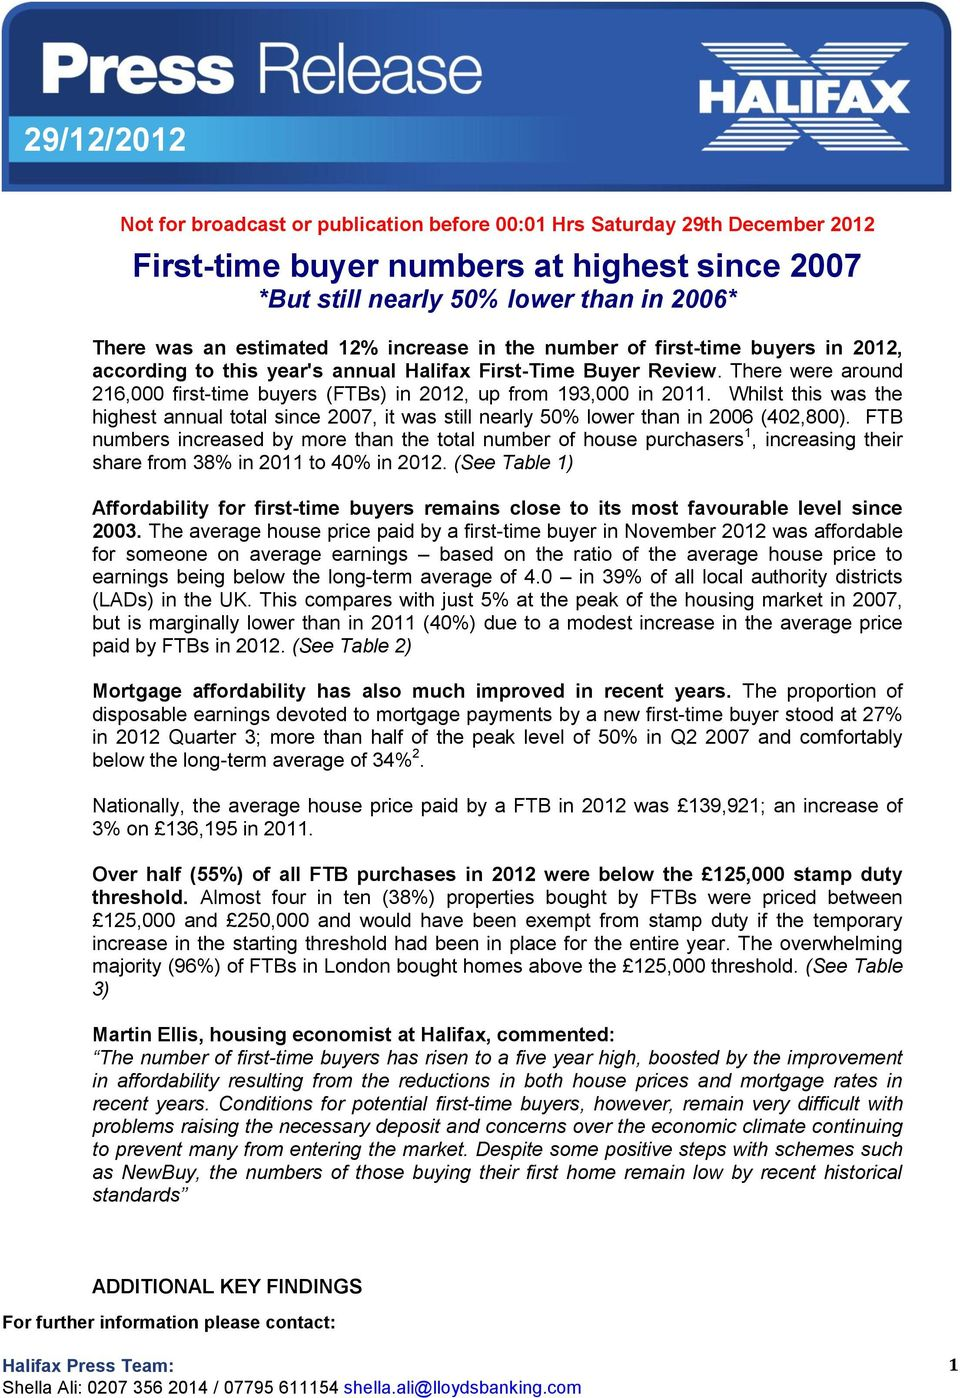 There were around 216,000 first-time buyers (FTBs) in 2012, up from 193,000 in 2011. Whilst this was the highest annual total since 2007, it was still nearly 50% lower than in 2006 (402,800).